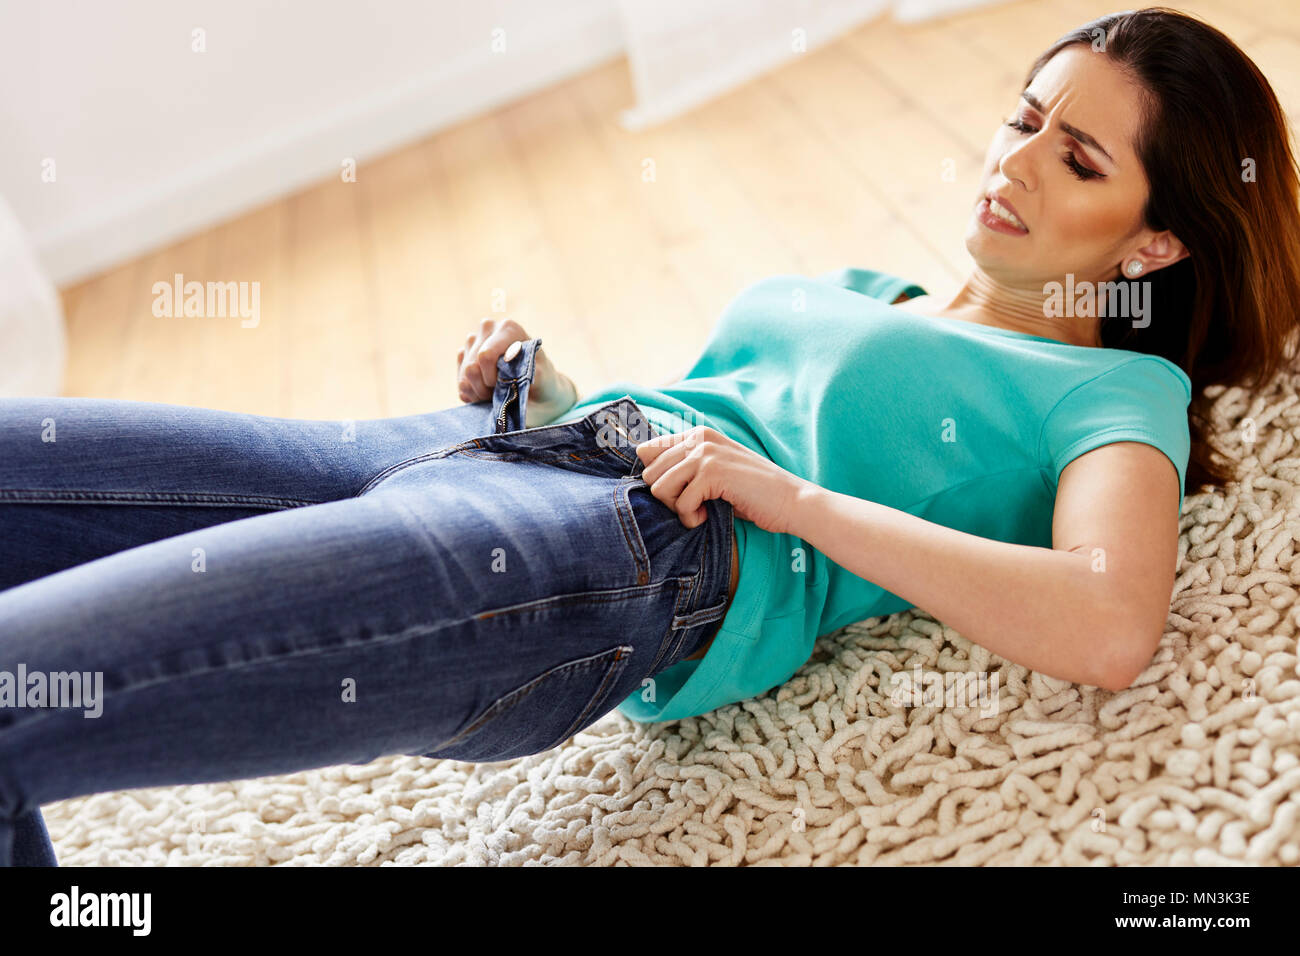 Girl pulling up tight fitted jeans - Stock Image